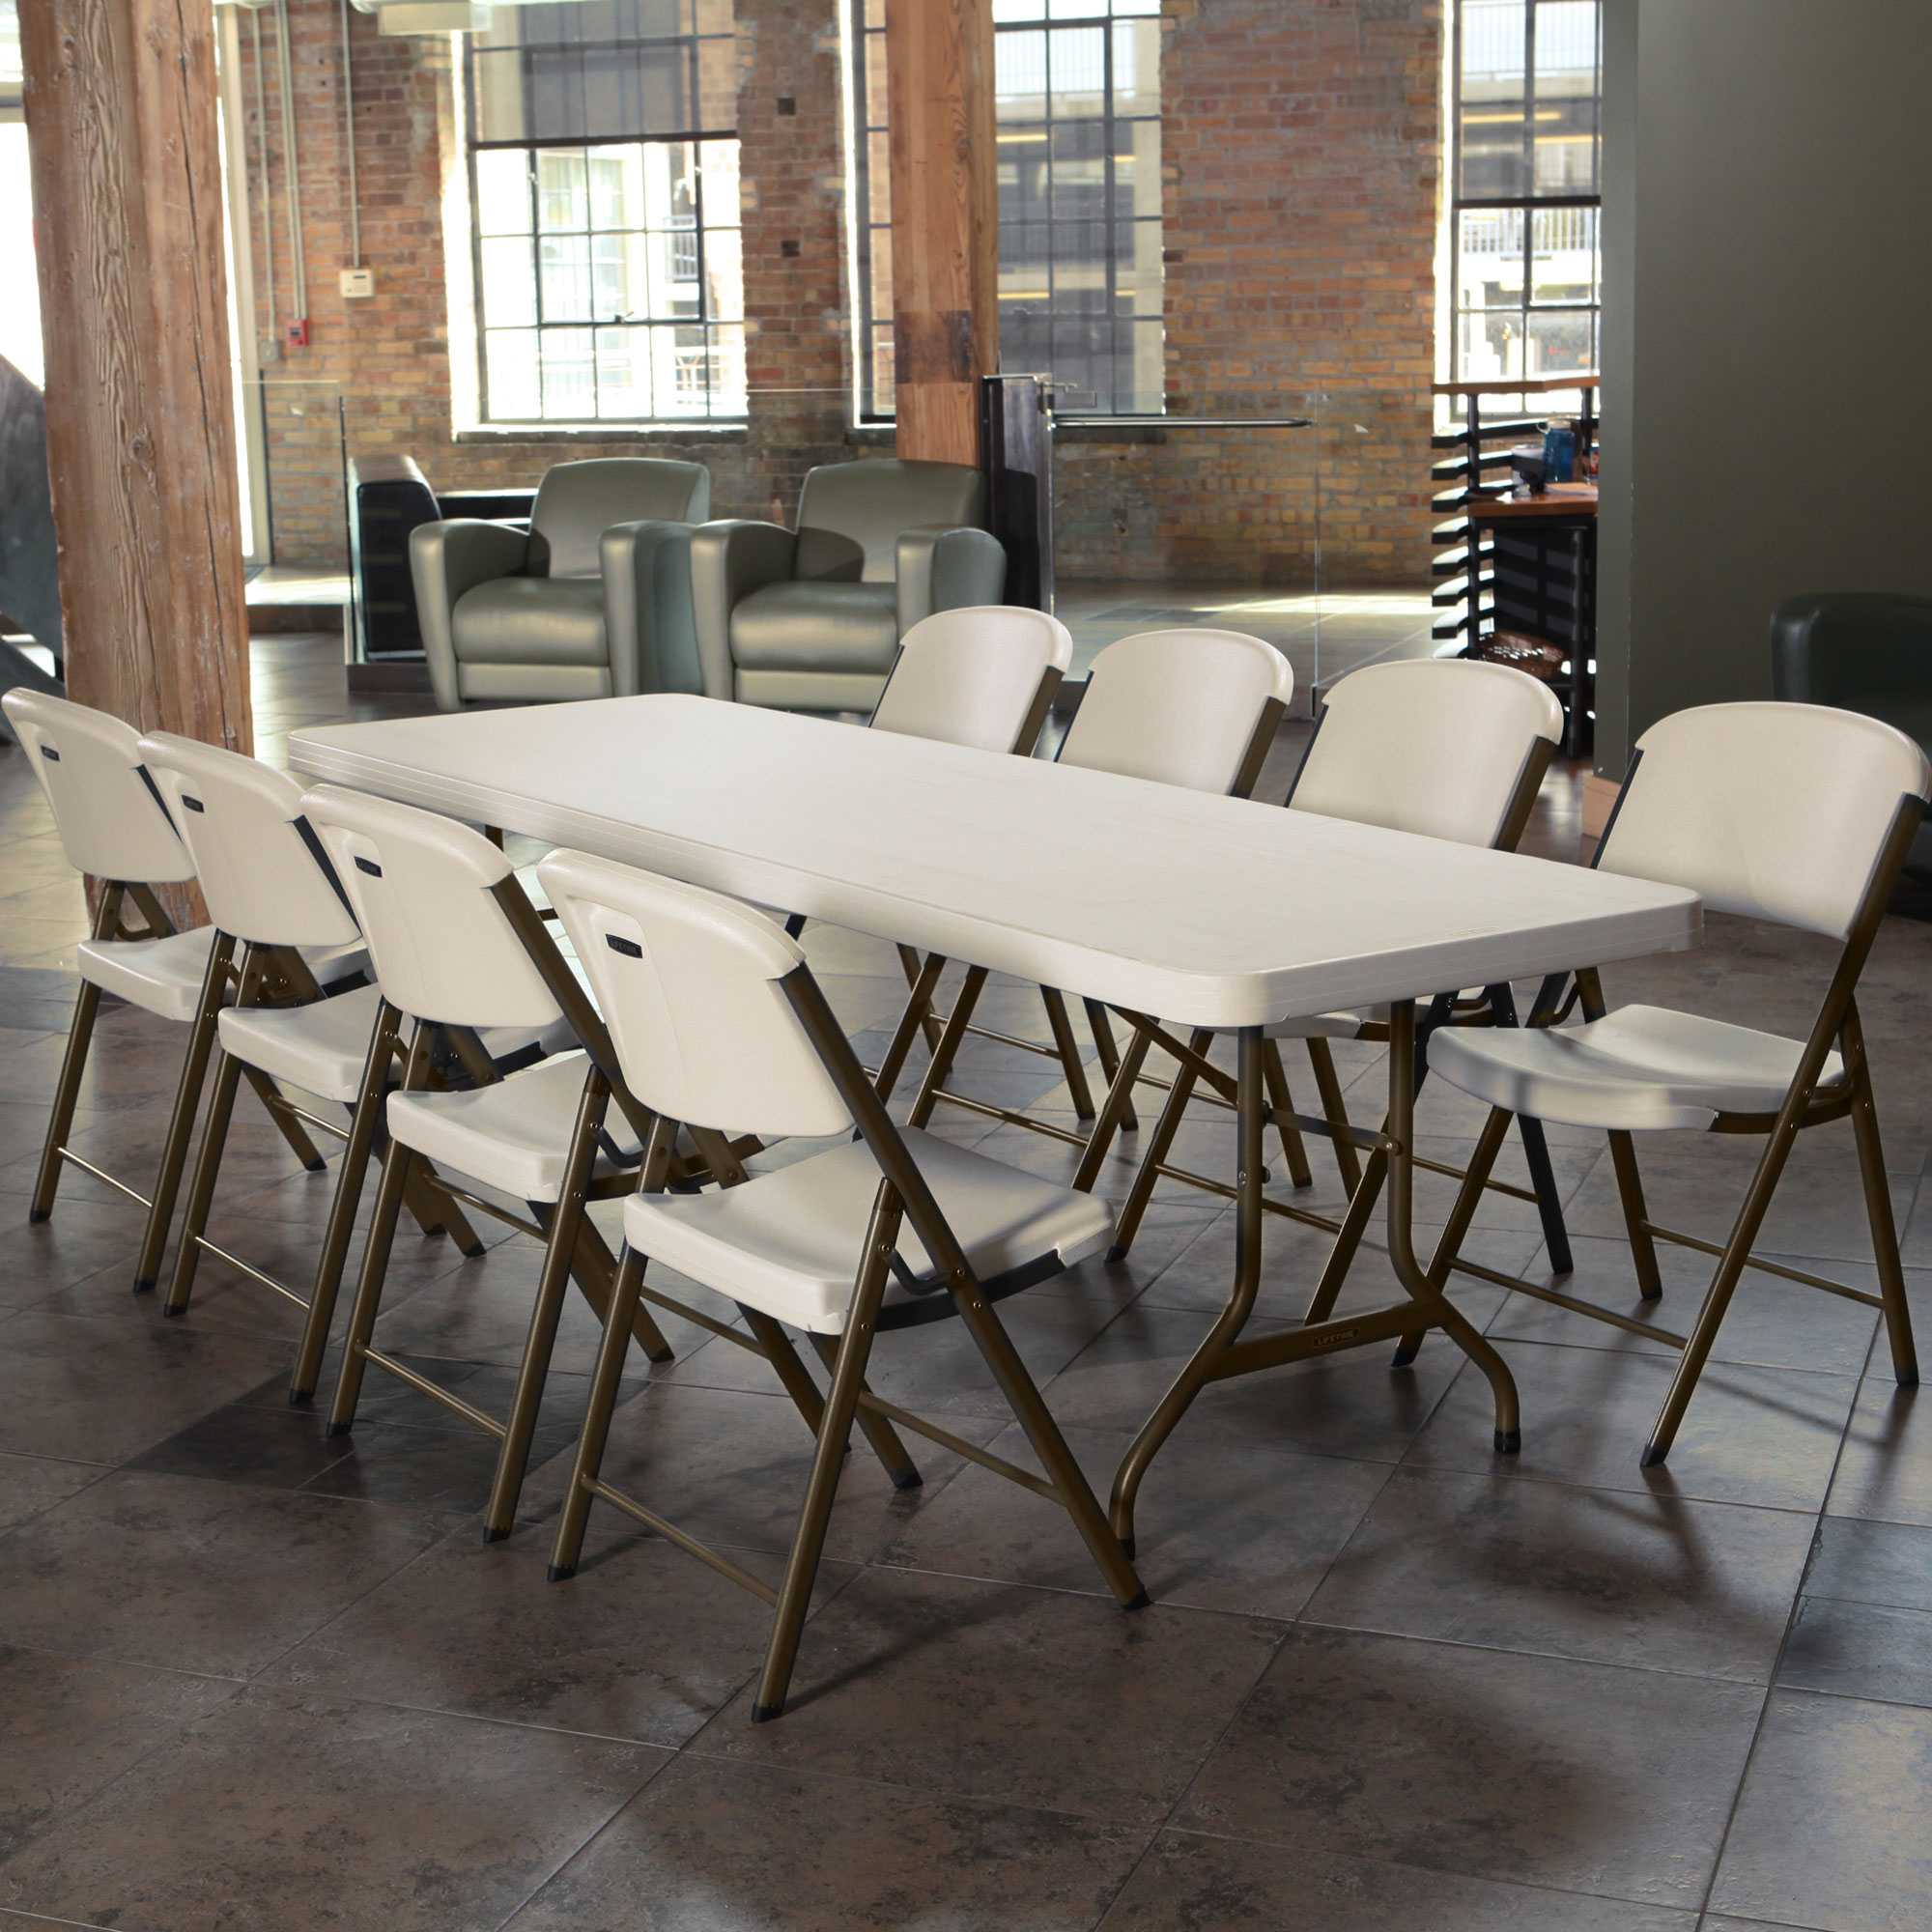 Table pliante rectangulaire 244cm / 10 personnes